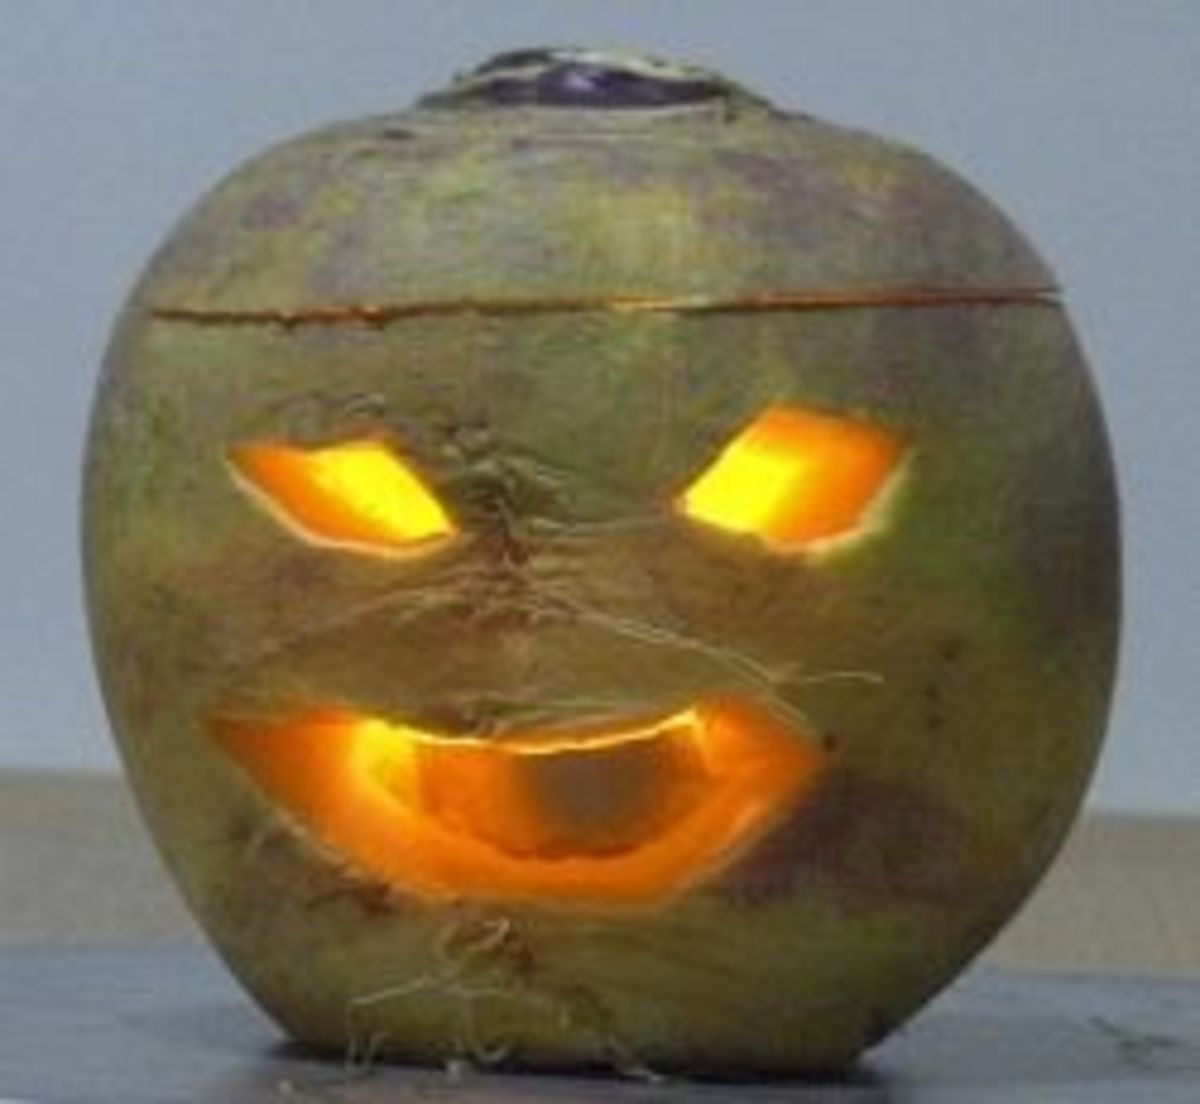 Turnip Jackolantern found via Wikimedia and is licensed under the Creative Commons Attribution-Share Alike 3.0 Unported license